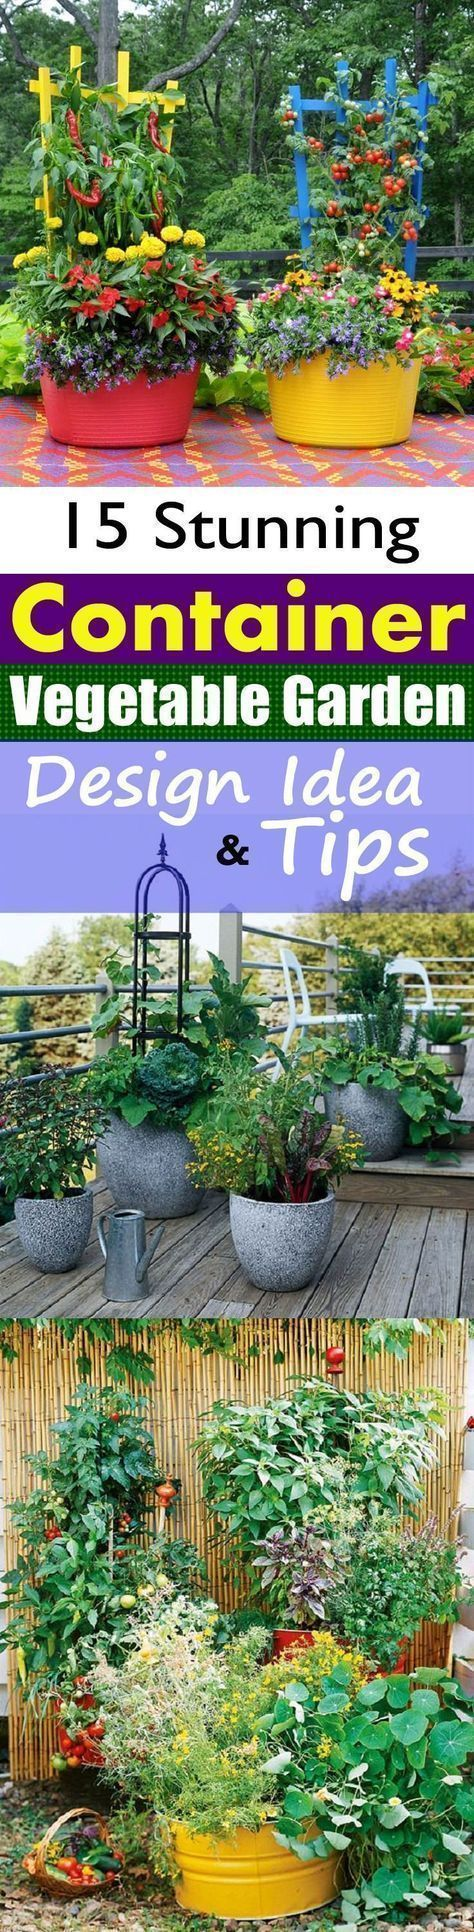 Create a Container Vegetable Garden. container gardening, container gardening ideas, container gardening tips, tips for growing in pots, container plans, container gardening inspiration, the best plants for pots, growing flowers in pots. #containergardening, #growinginpots #containergardens #container #containergarden #containergardening #containergardeningideas #containergardeningtips #flowergardening #flowergardenplanningideas #containergardeningpots #containervegetablegardeningideas